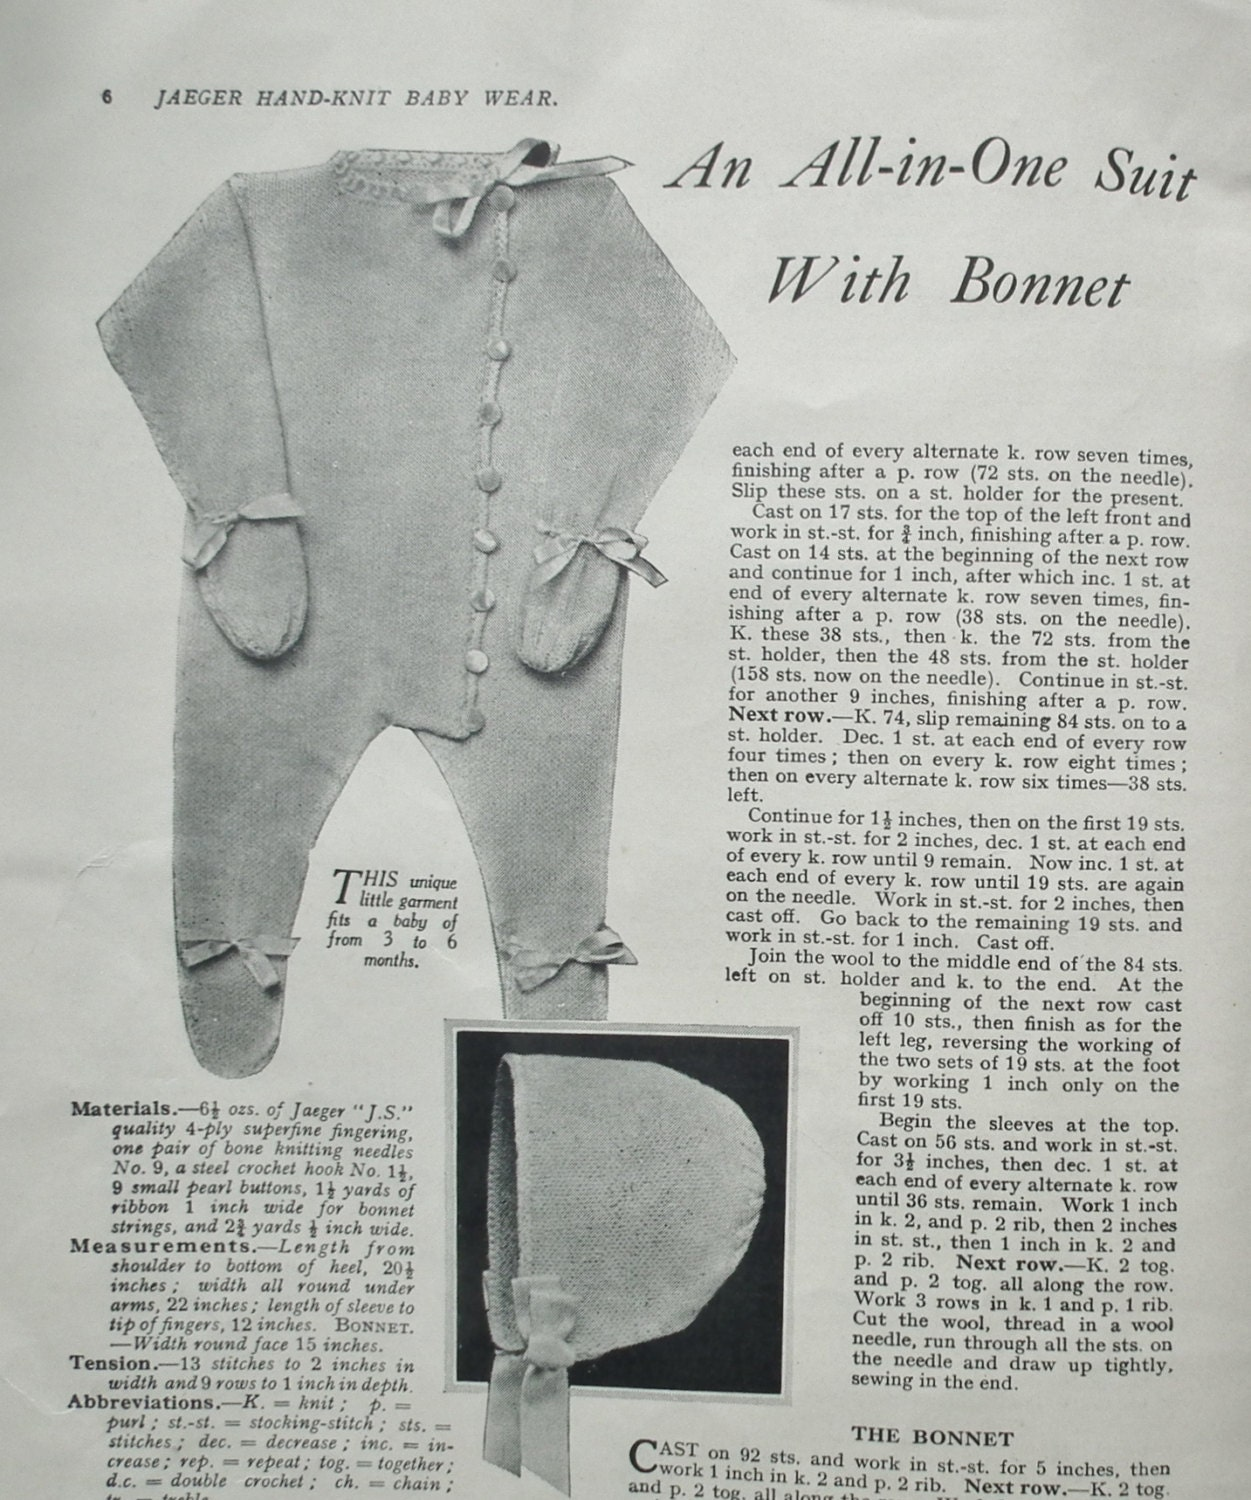 Jaeger Hand-Knit Baby Wear Mabel Lucie Attwell Vintage 1930s ...